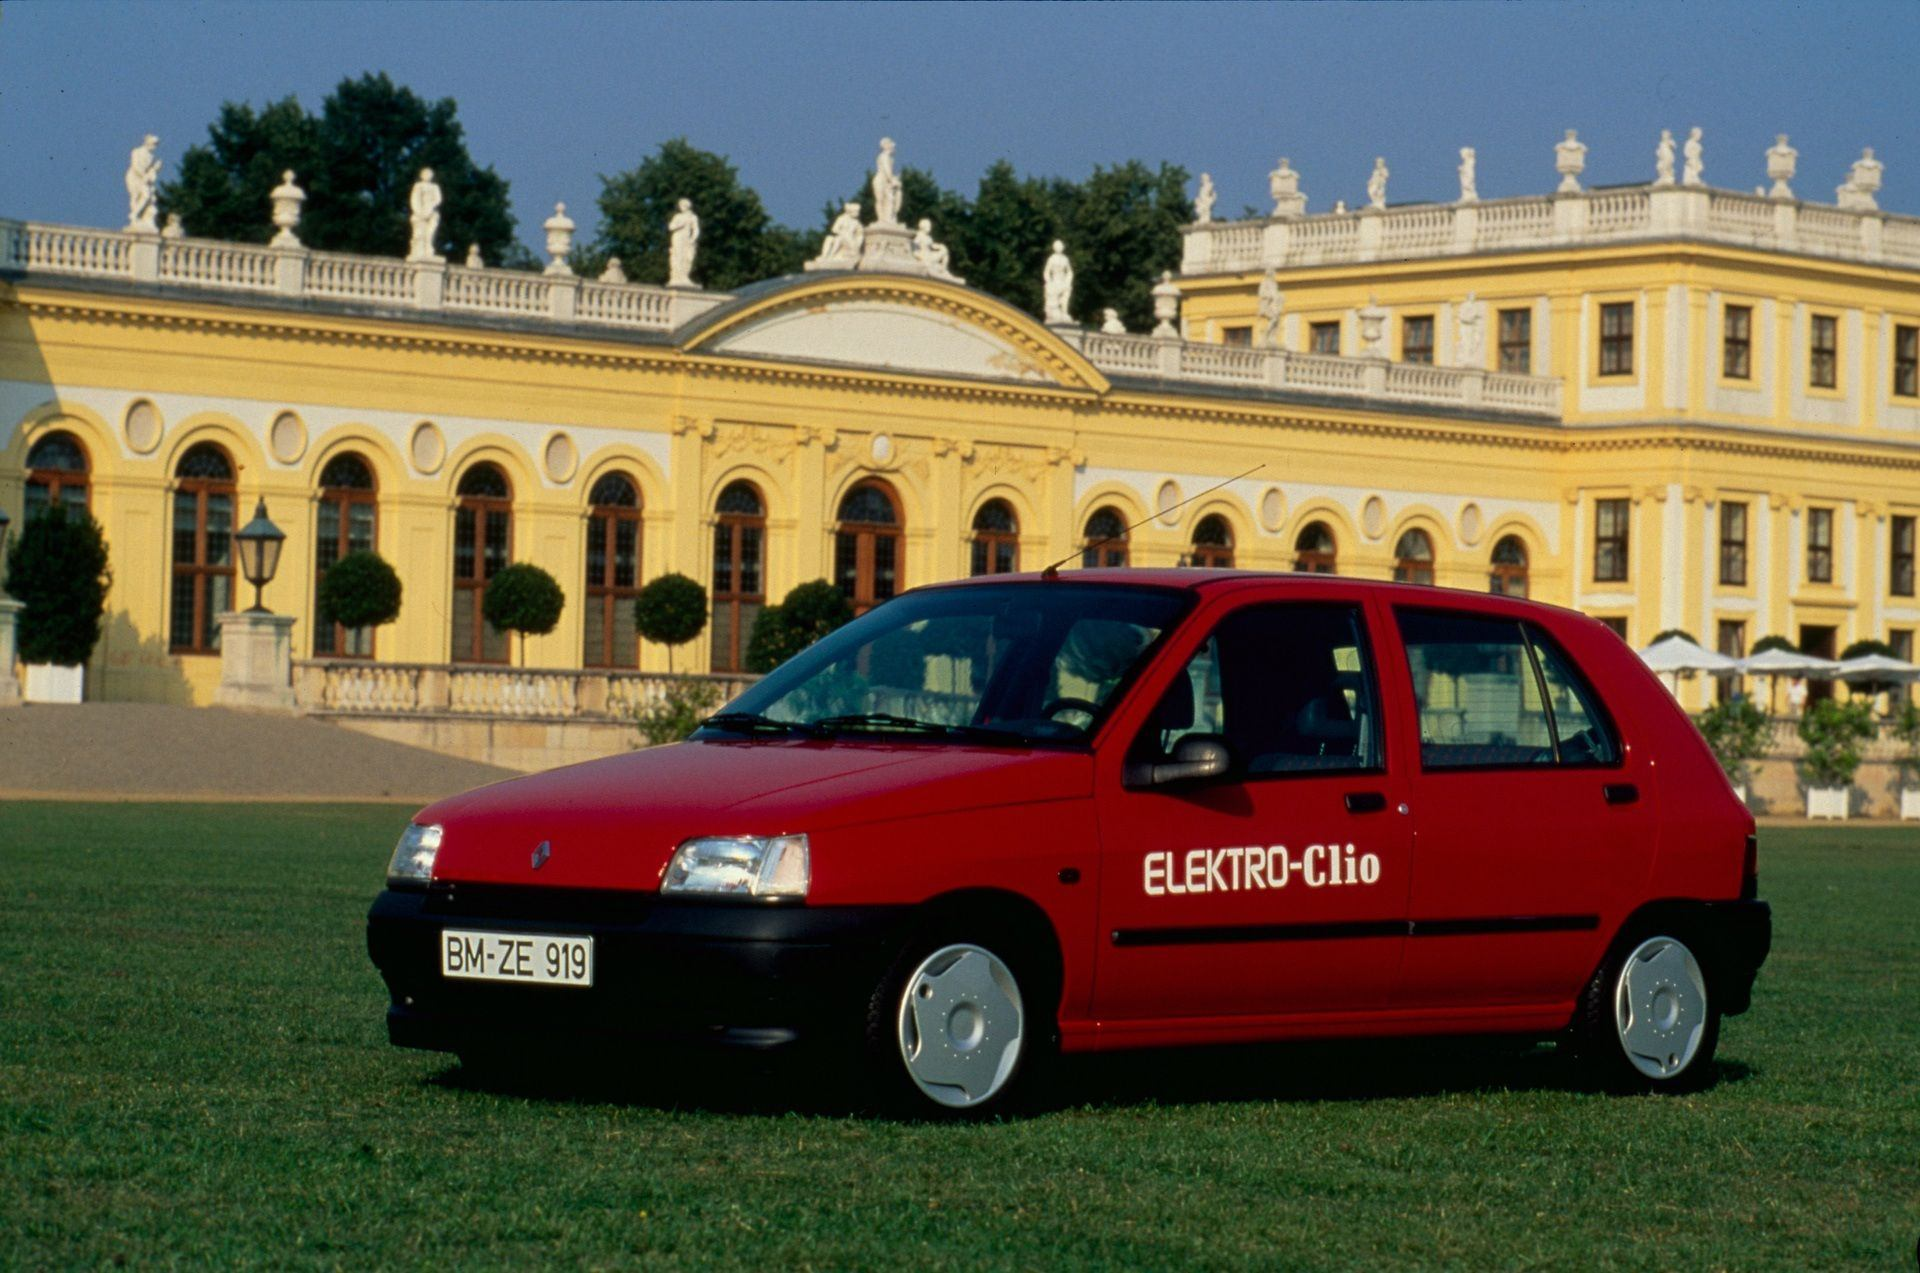 2020-30-years-of-Renault-CLIO-Renault-CLIO-I-1990-1999-19